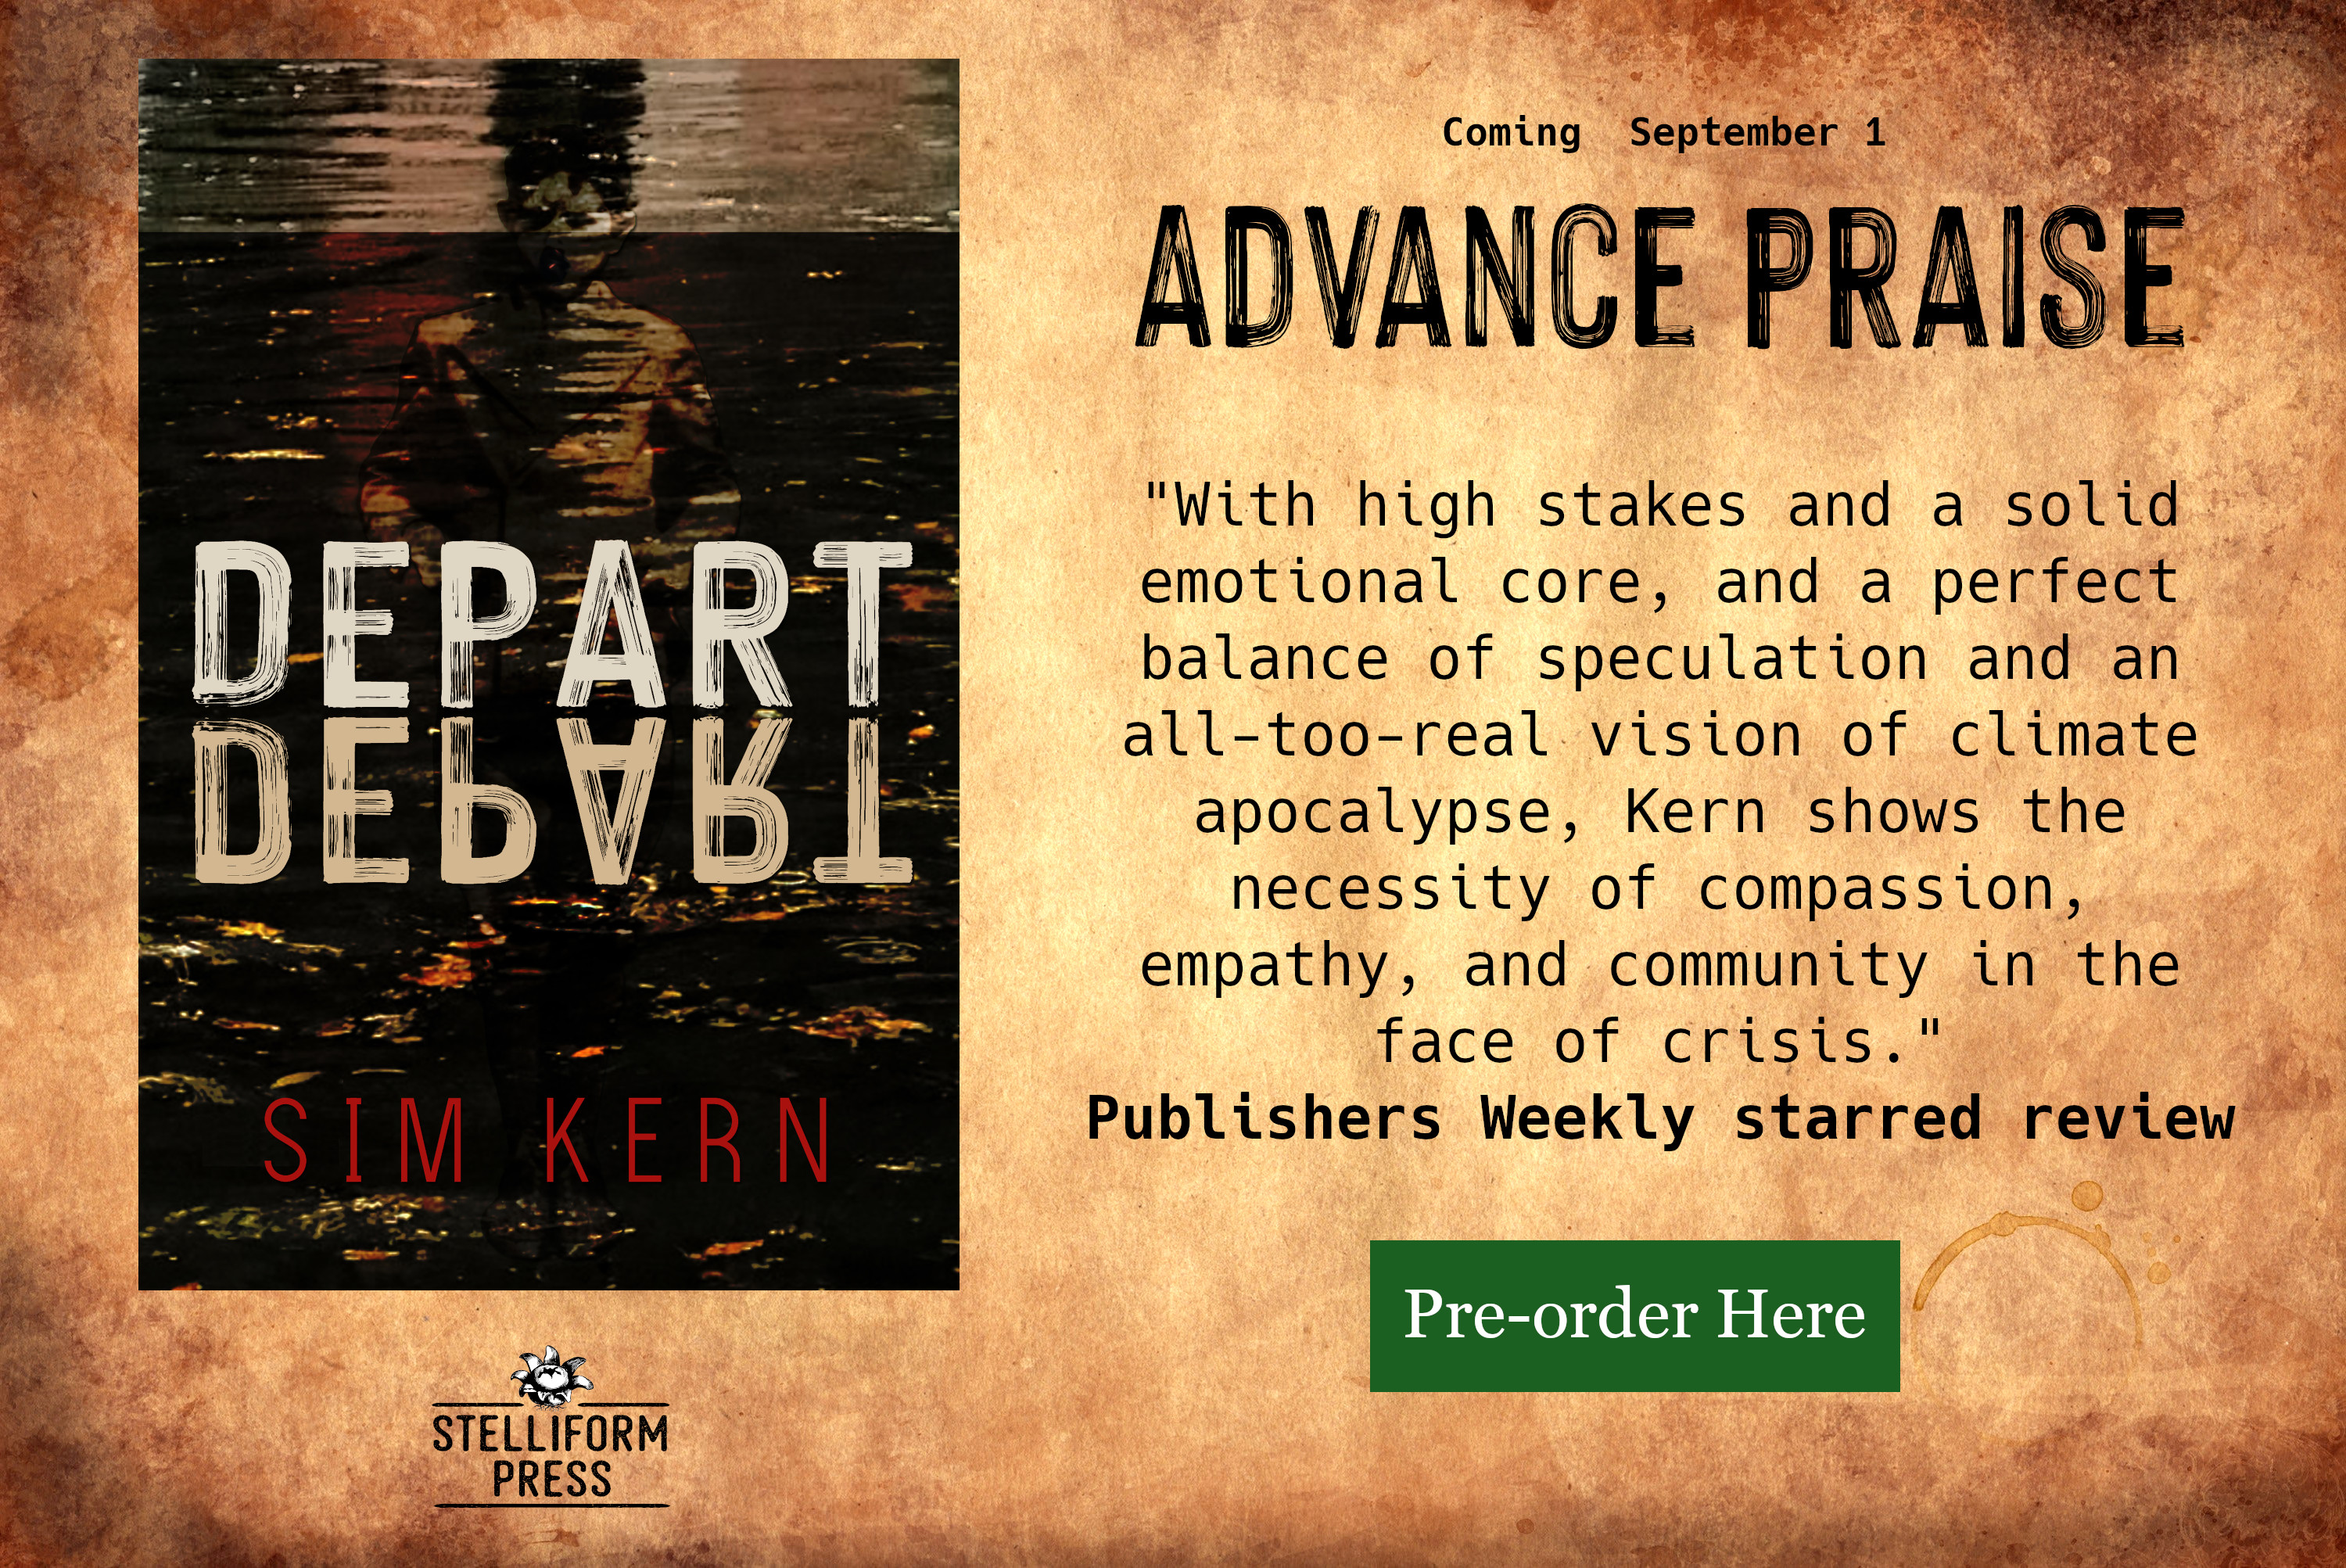 Image of Kern book cover with text from their Publishers Weekly starred review:With high stakes and a solid emotional core, and a perfect balance of speculation and an all-too-real vision of climate apocalypse, Kern shows the necessity of compassion, empathy, and community in the face of crisis.